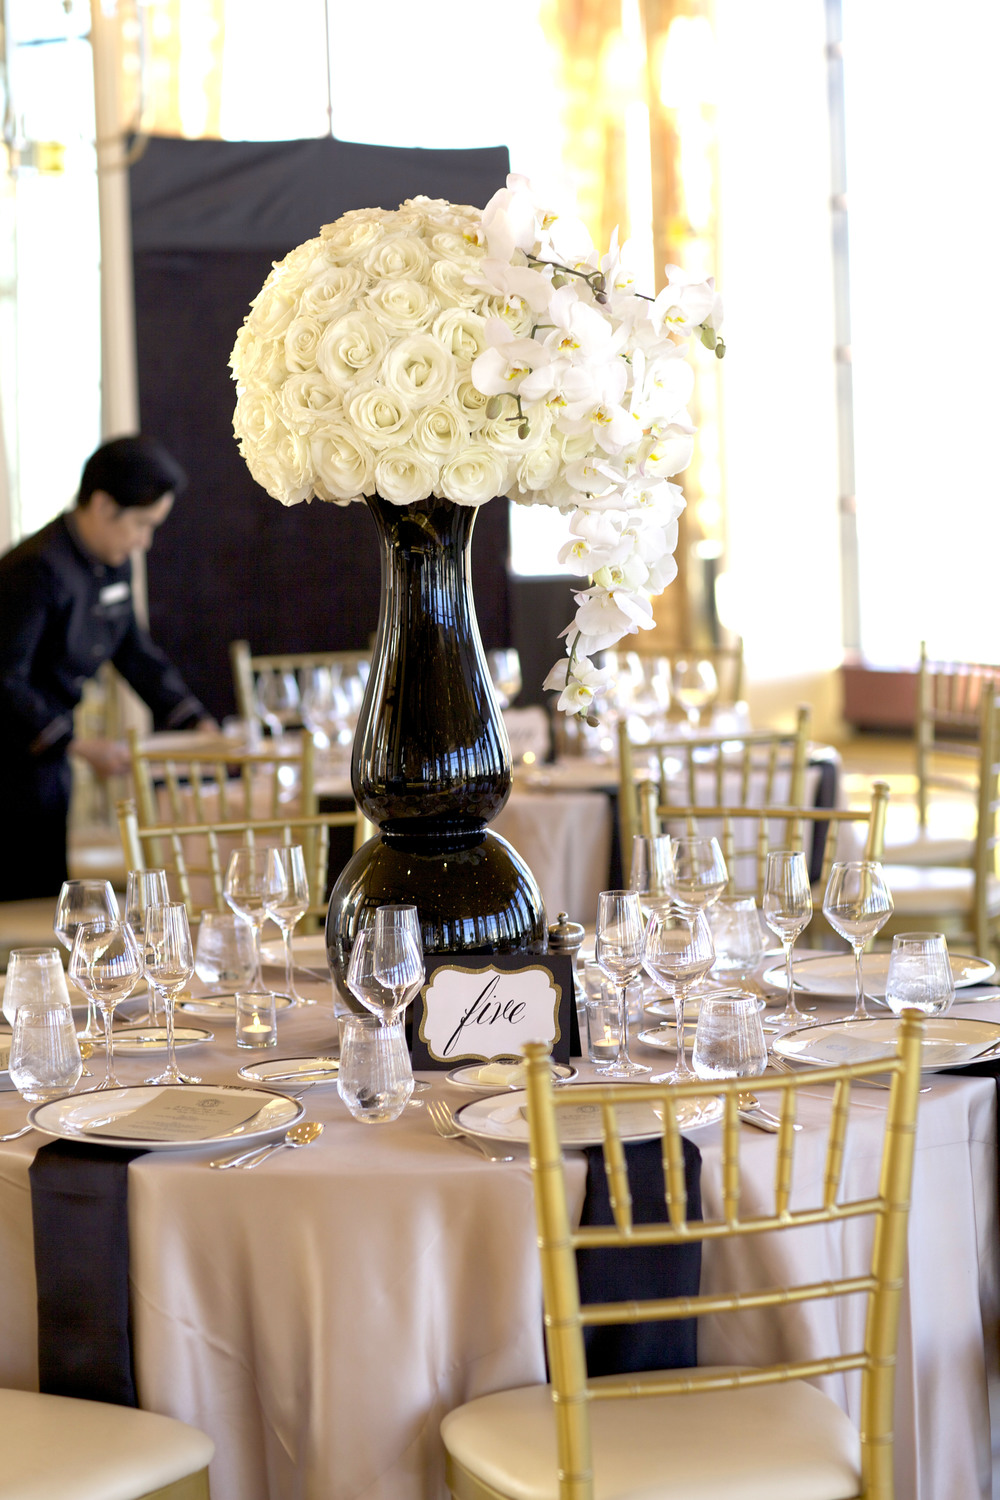 rose and orchid centerpiece - wish social events